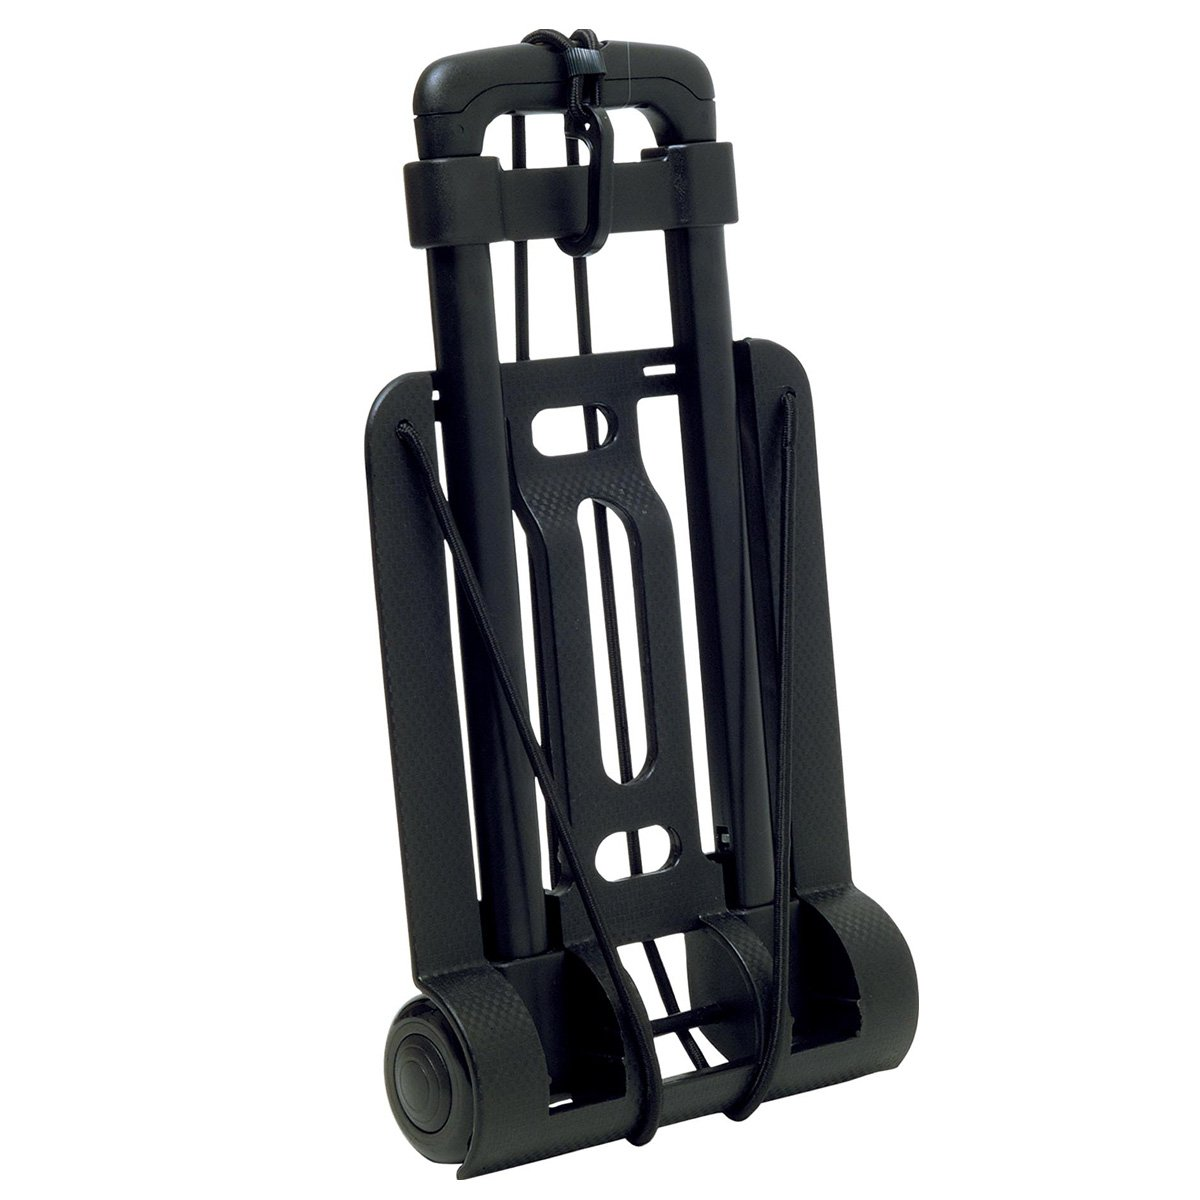 Travel Blue  Extra Strong Deluxe Trolley Cart, Black, One Size